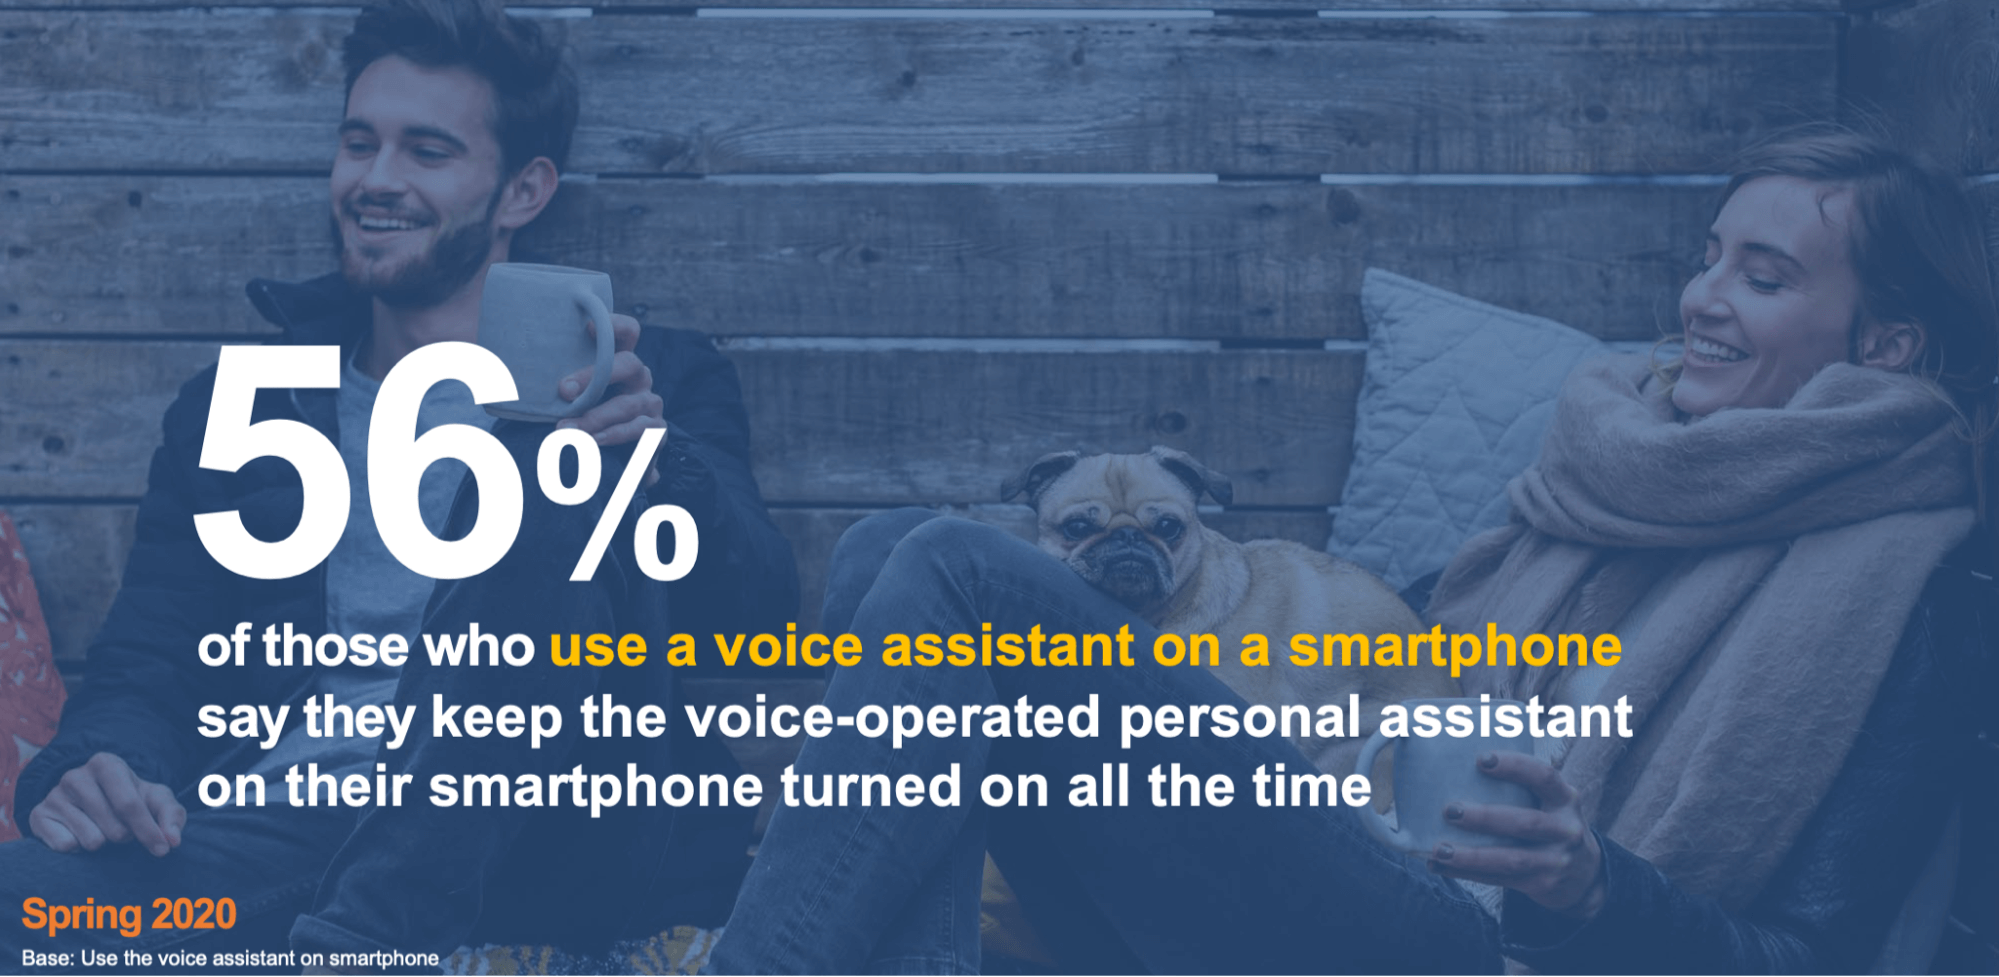 Users using Voice Assistant on Smartphone